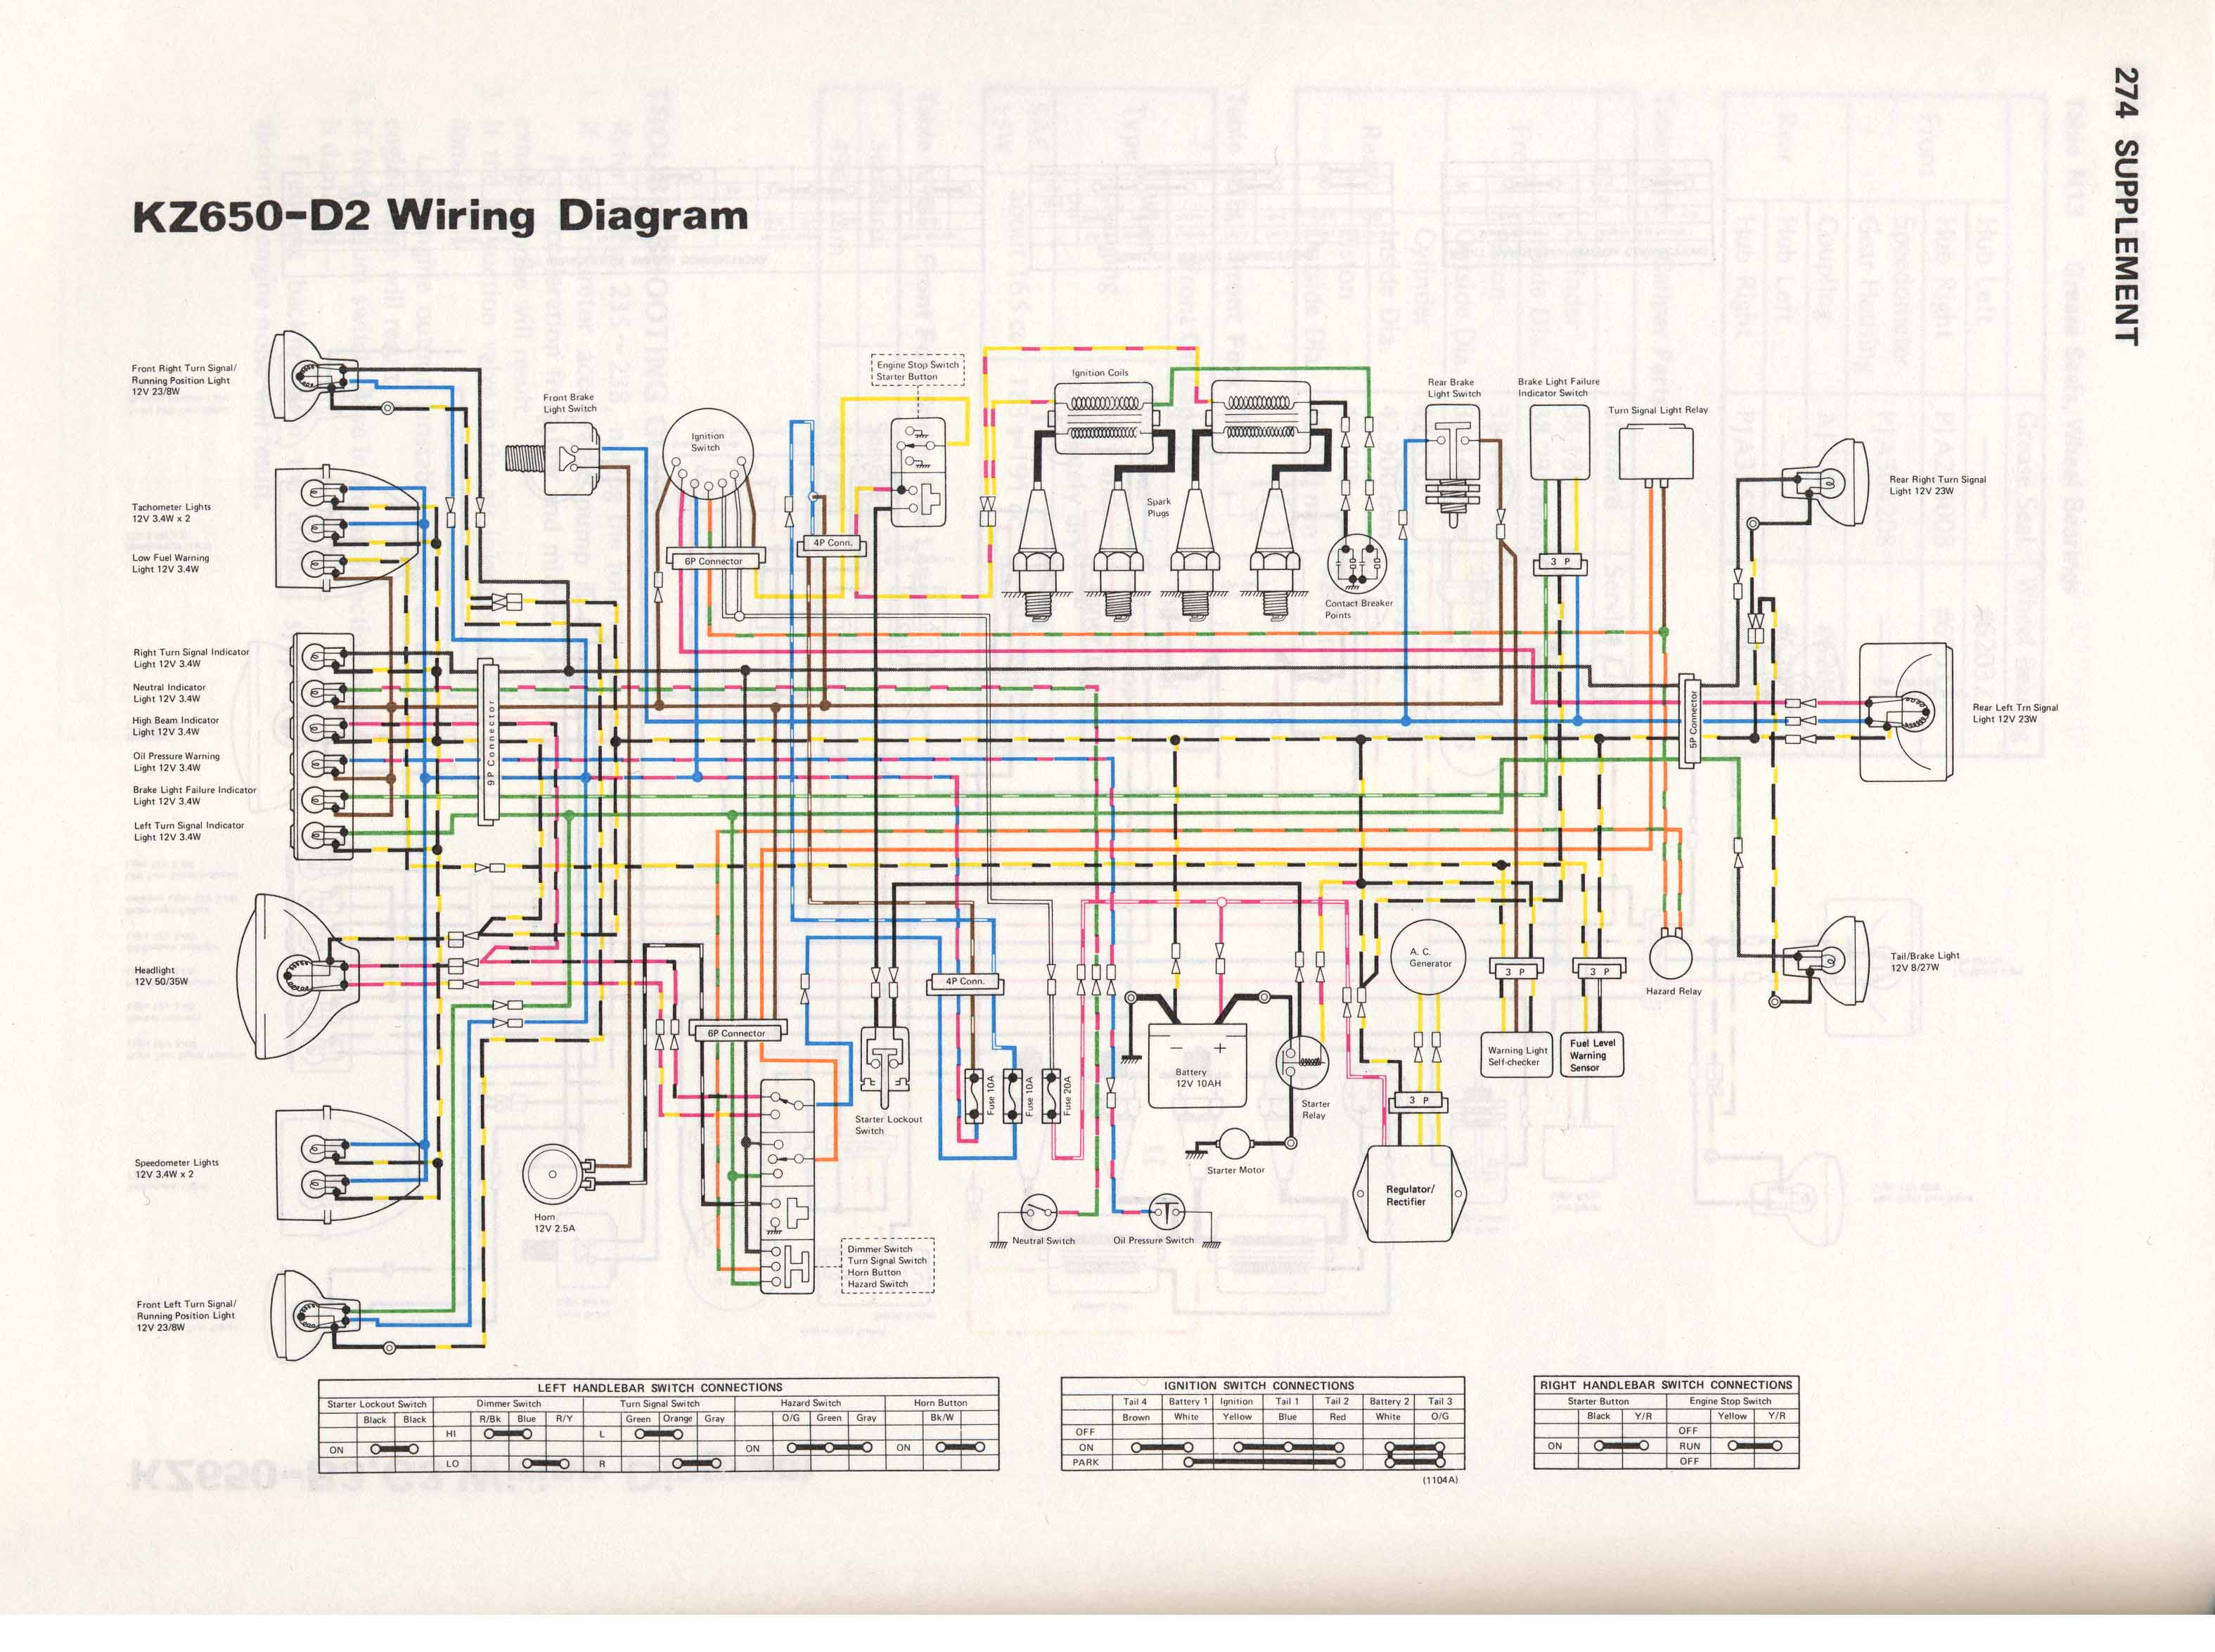 KZ650 D2 kz650 info wiring diagrams wiring diagram for victory motorcycles at bakdesigns.co